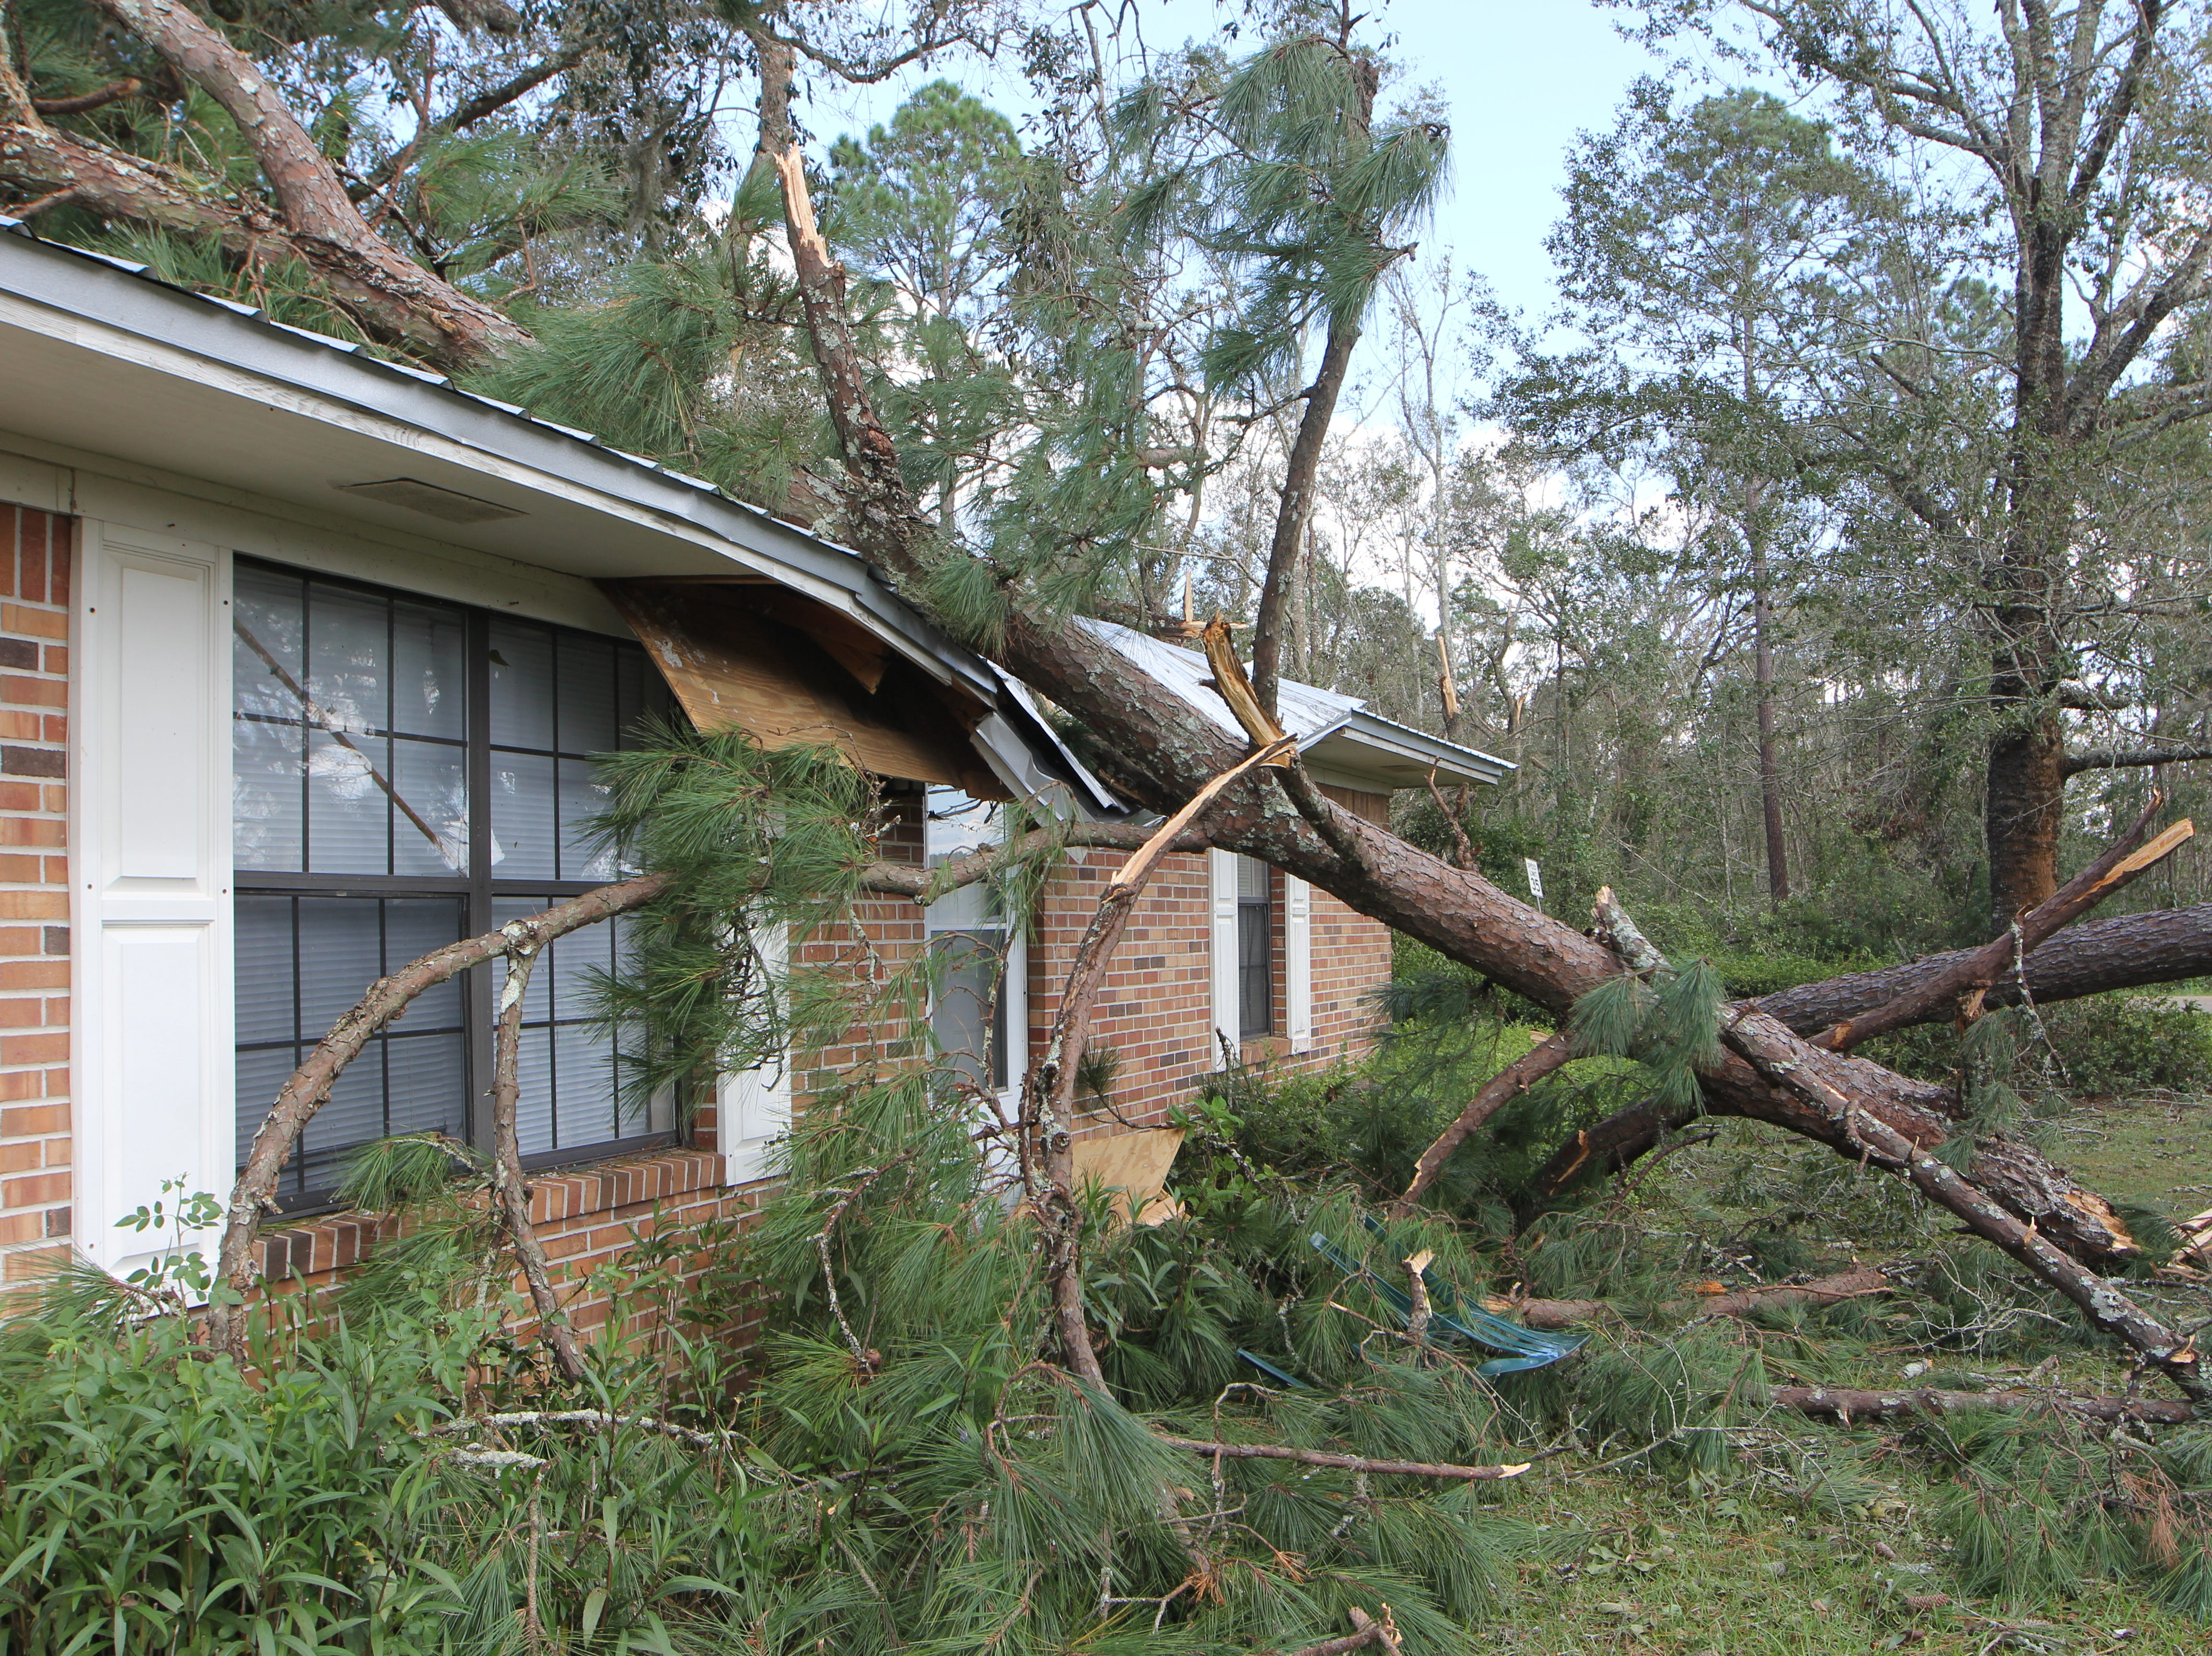 A tree fell on a house during Hurricane Michael in Gadsden County.